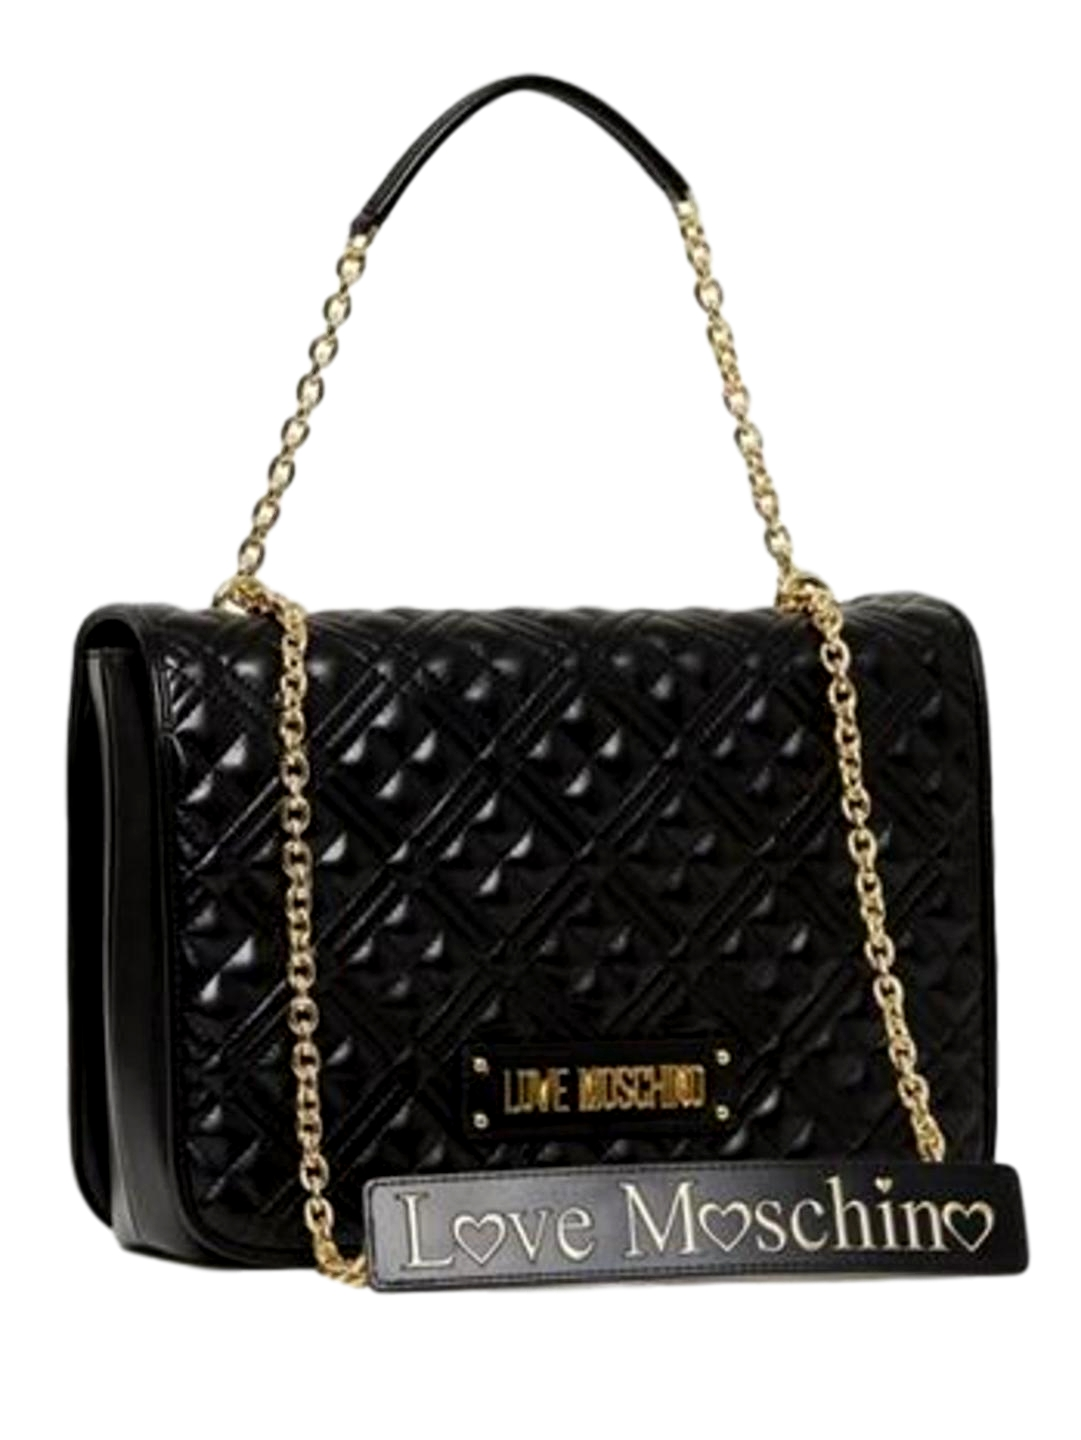 LOVE MOSCHINO BORSA QUILTED NAPPA PU NERO JC4003PP1ALA0000  Large